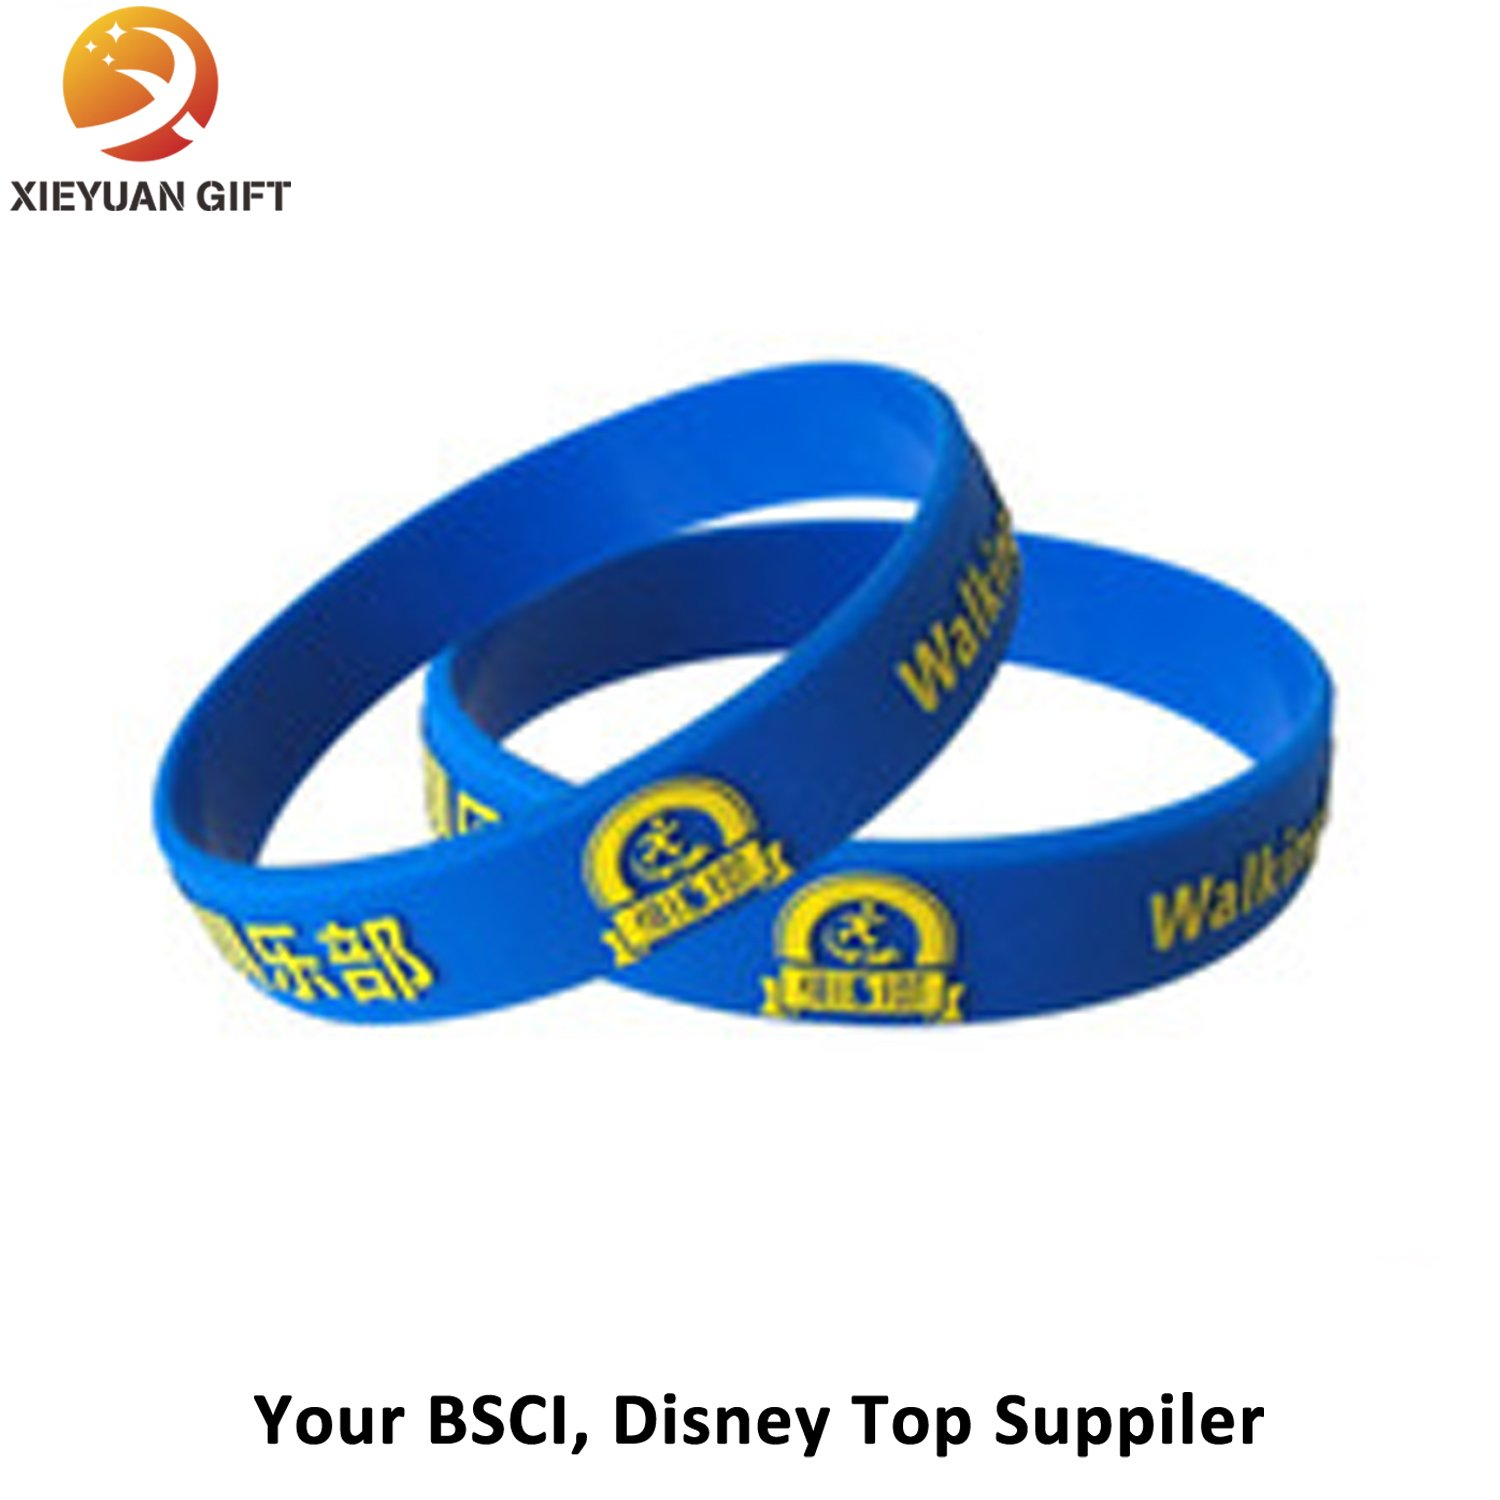 Made in China PVC Silicone Bracelet Wedding Gifts